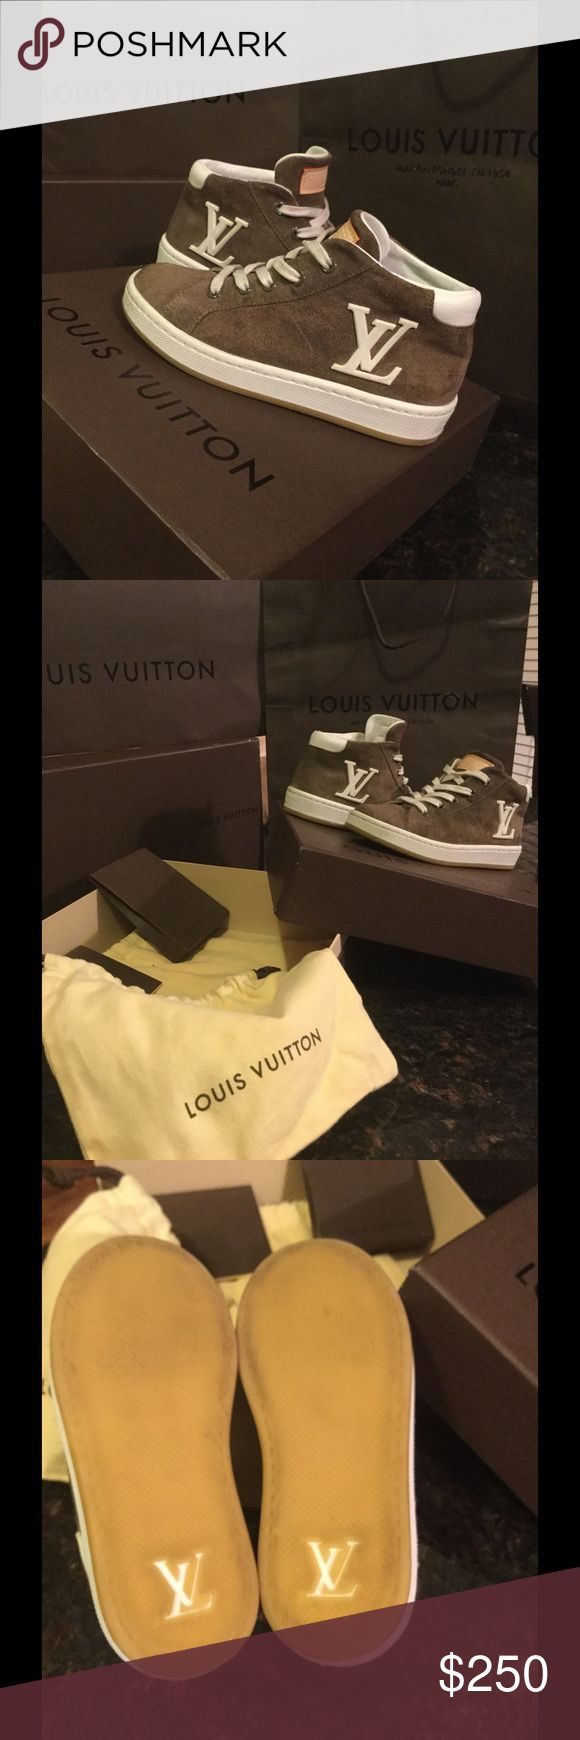 Authentic unisex Louis Vuitton hightops I bought these for my grandson and he wasn't allowed to wear them outside so they have never seen concrete there like brand spanking new shoes so cute but he grew out of them too fast so we had to buy new ones they are unisex good for girls or boys feel free to ask any questions you have or for any more pictures you might need you will not be sorry with the purchase of the shoes for your little diva or your little man that knows his style Louis Vuitton…